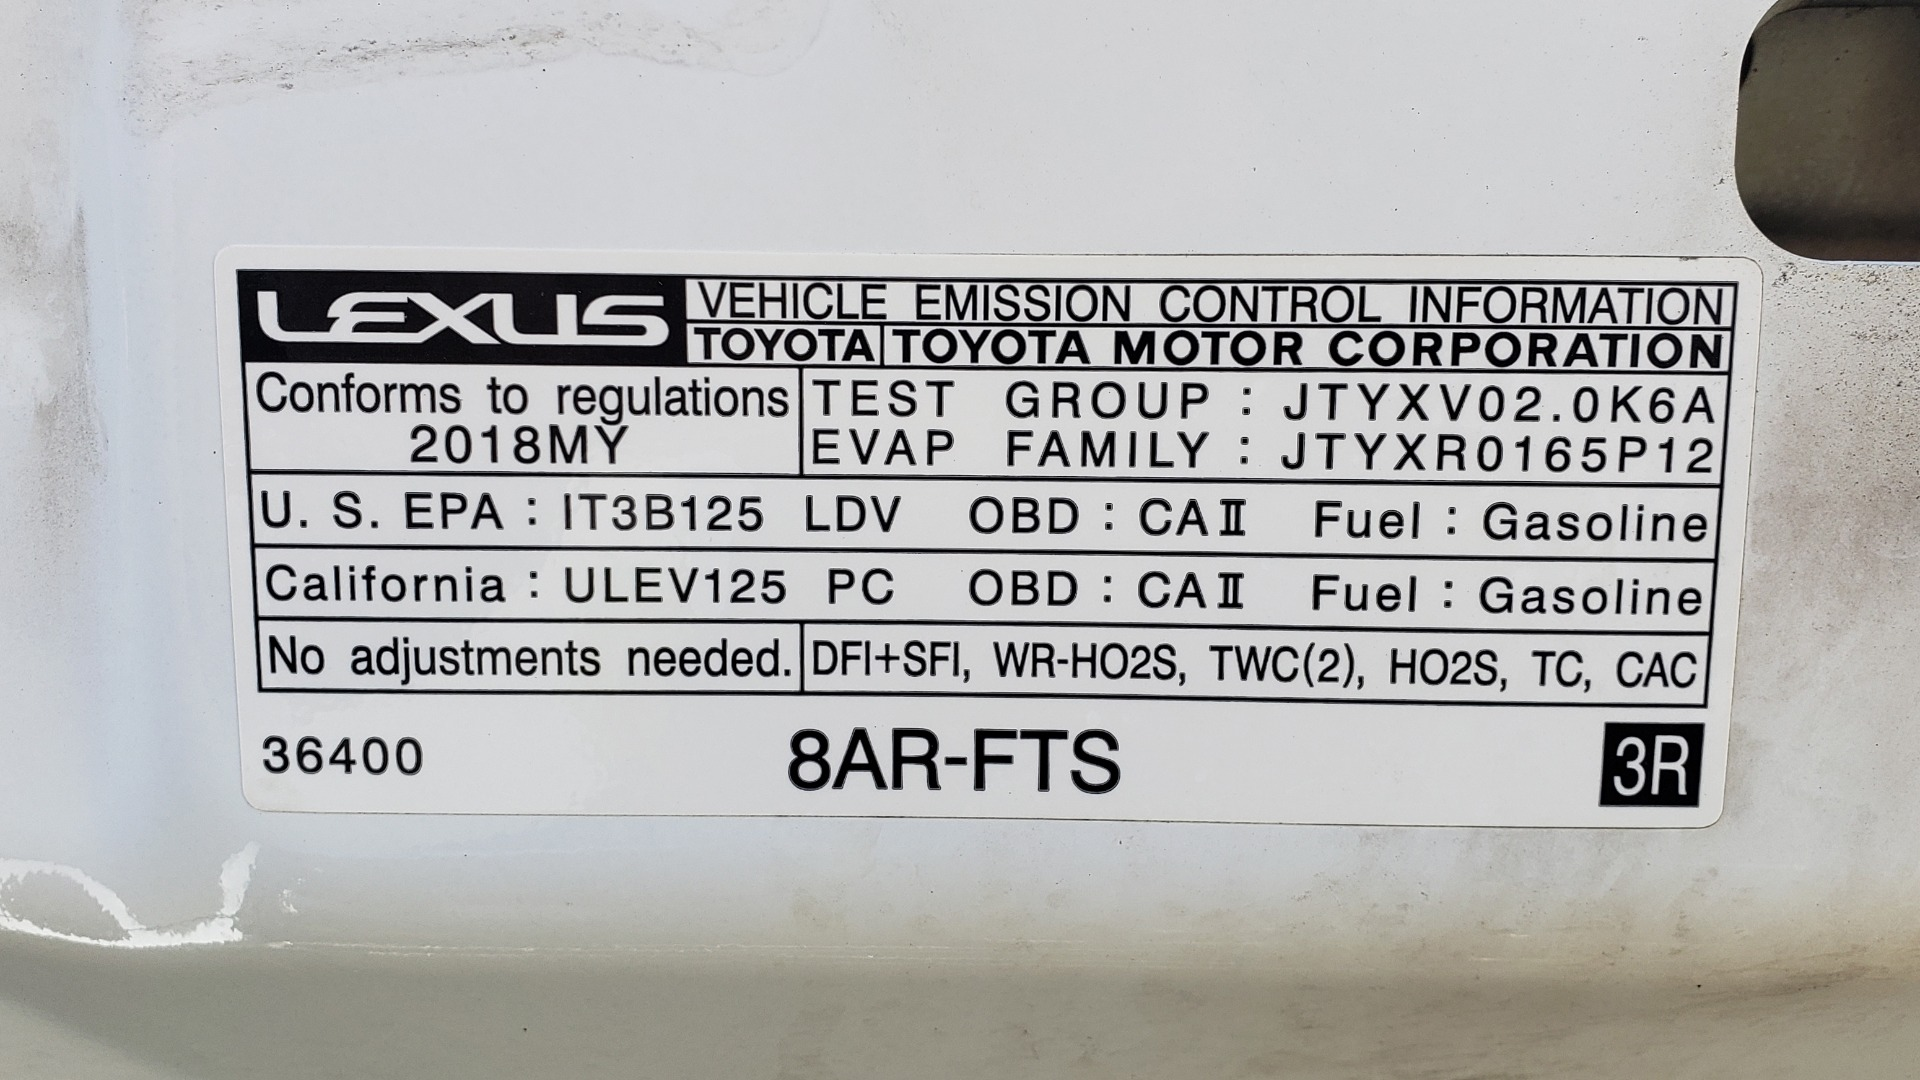 Used 2018 Lexus IS 300 F-SPORT / BSM / SUNROOF / REARVIEW / 18IN WHEELS for sale Sold at Formula Imports in Charlotte NC 28227 13